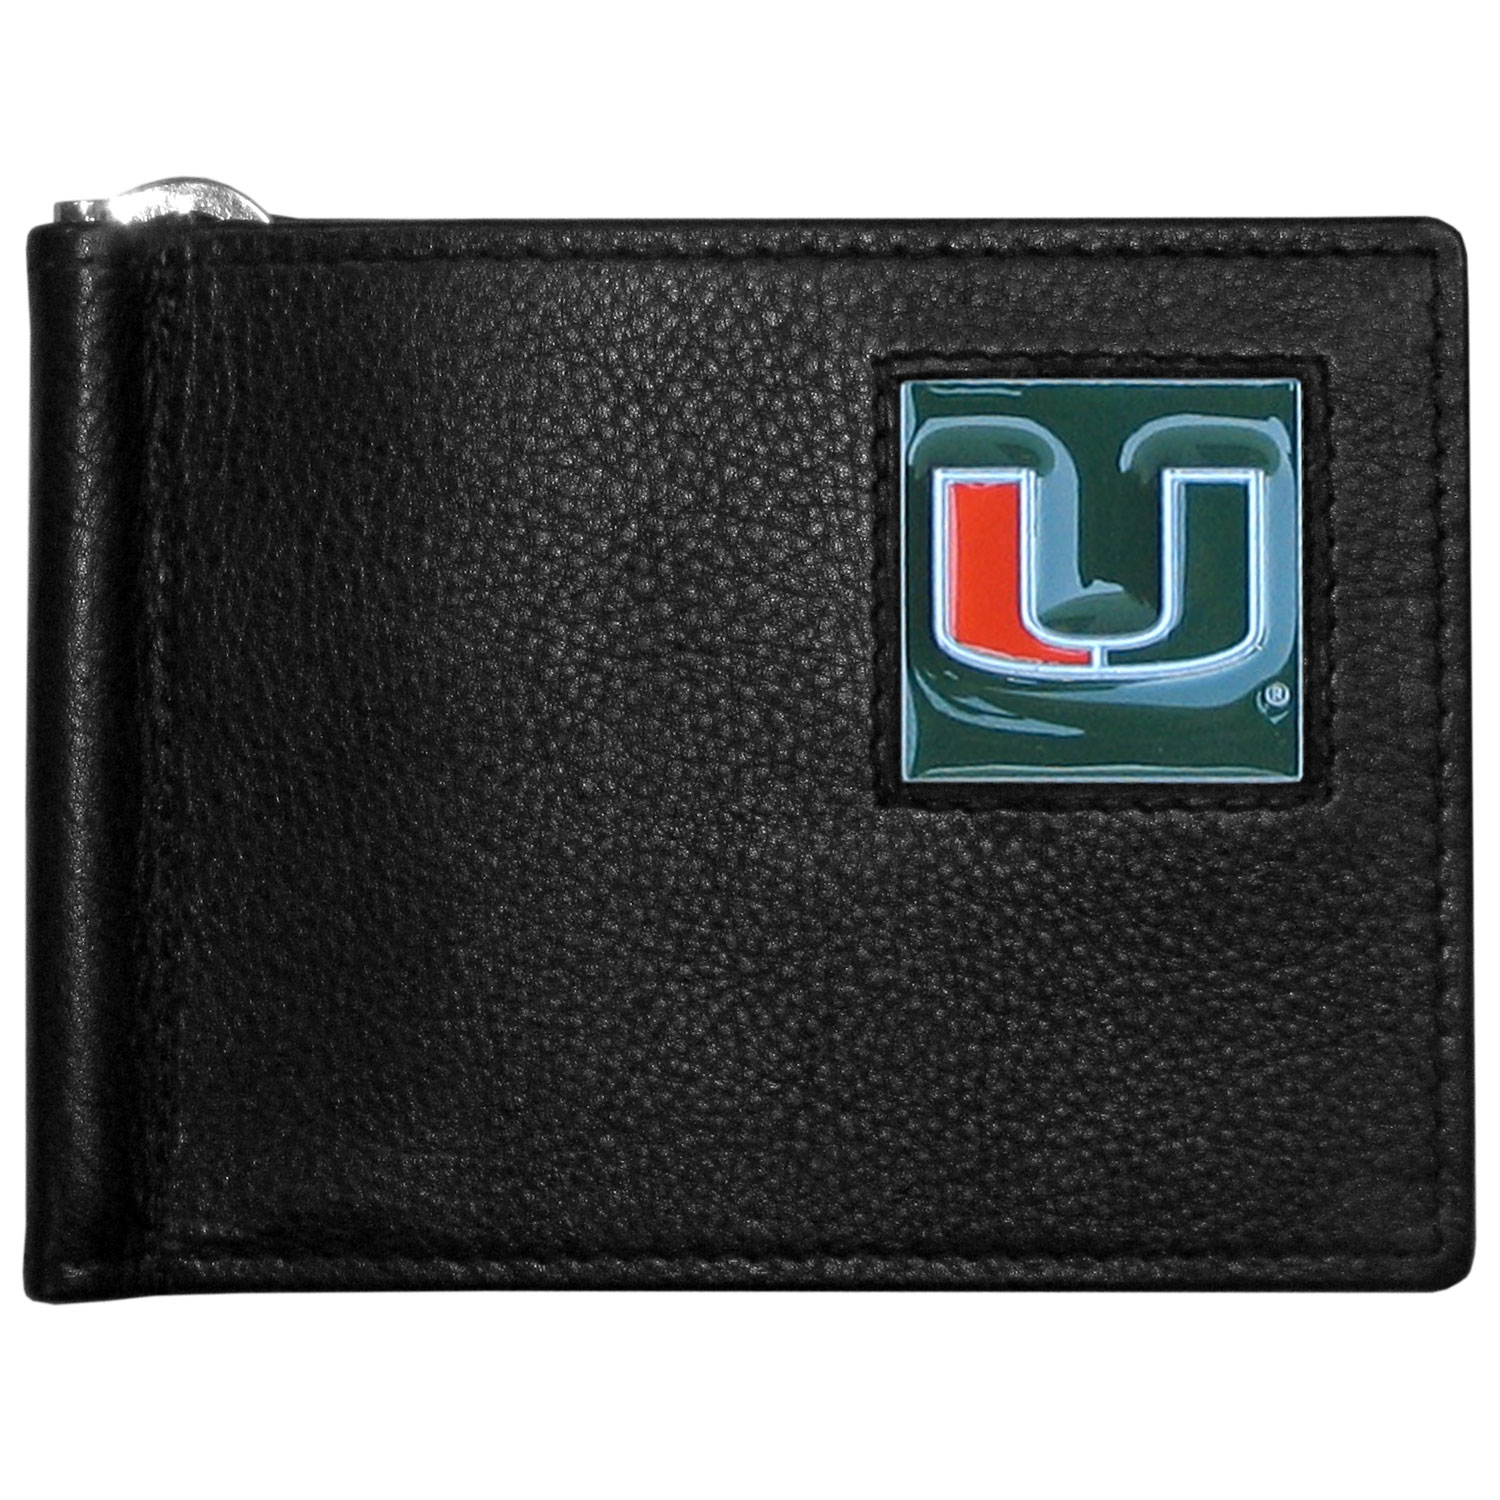 Miami Hurricanes Leather Bill Clip Wallet - This cool new style wallet features an inner, metal bill clip that lips up for easy access. The super slim wallet holds tons of stuff with ample pockets, credit card slots & windowed ID slot. The wallet is made of genuine fine grain leather and it finished with a metal Miami Hurricanes emblem. The wallet is shipped in gift box packaging.